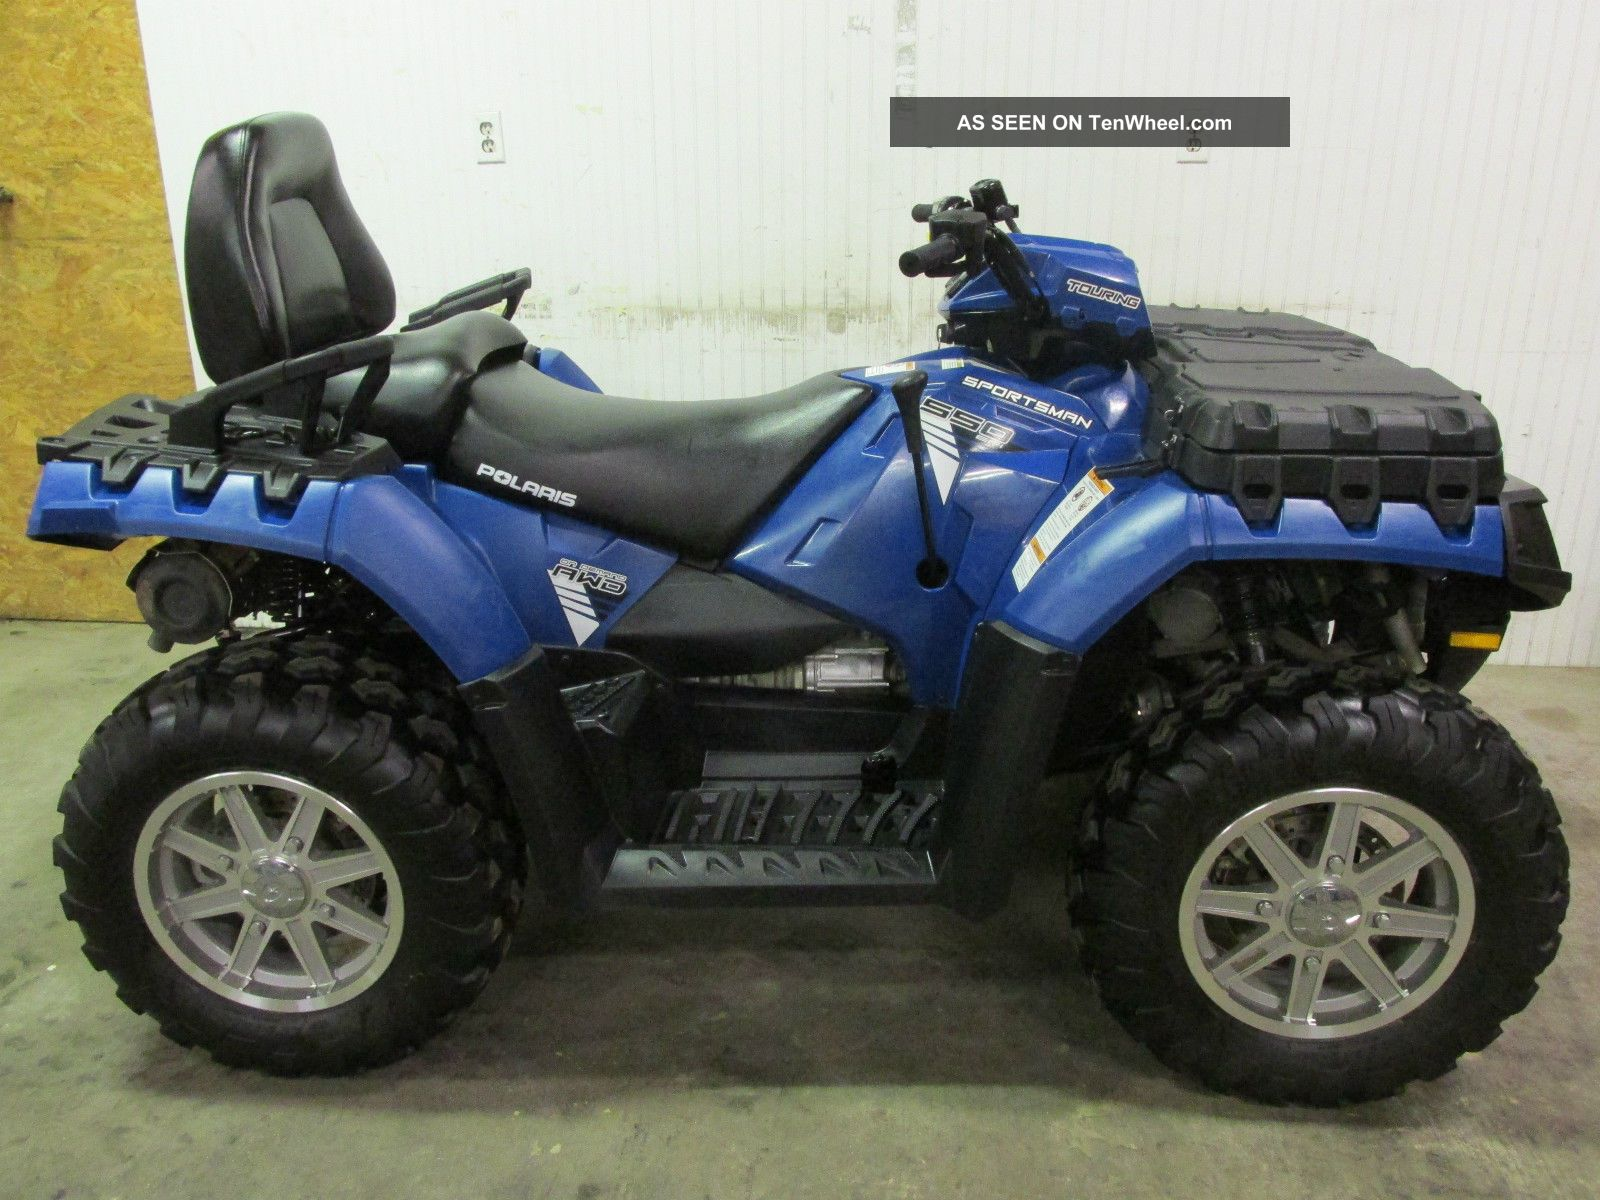 2013 Polaris Sportsman Polaris photo